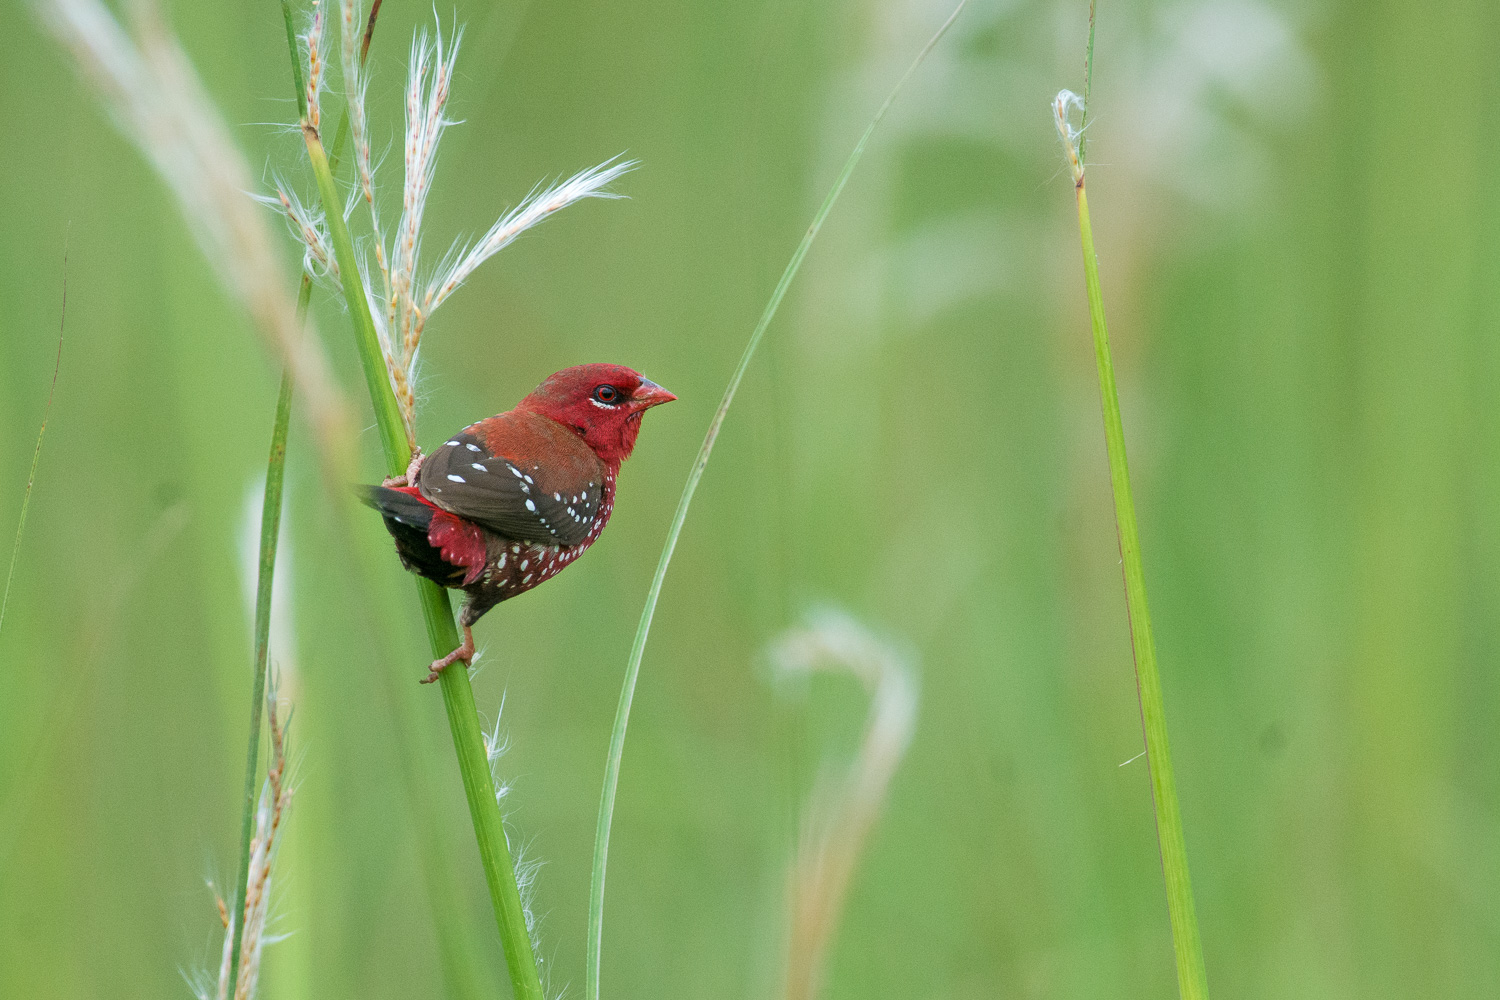 How to Choose the Best Lens for Wildlife Photography - Red munia sitting on grass